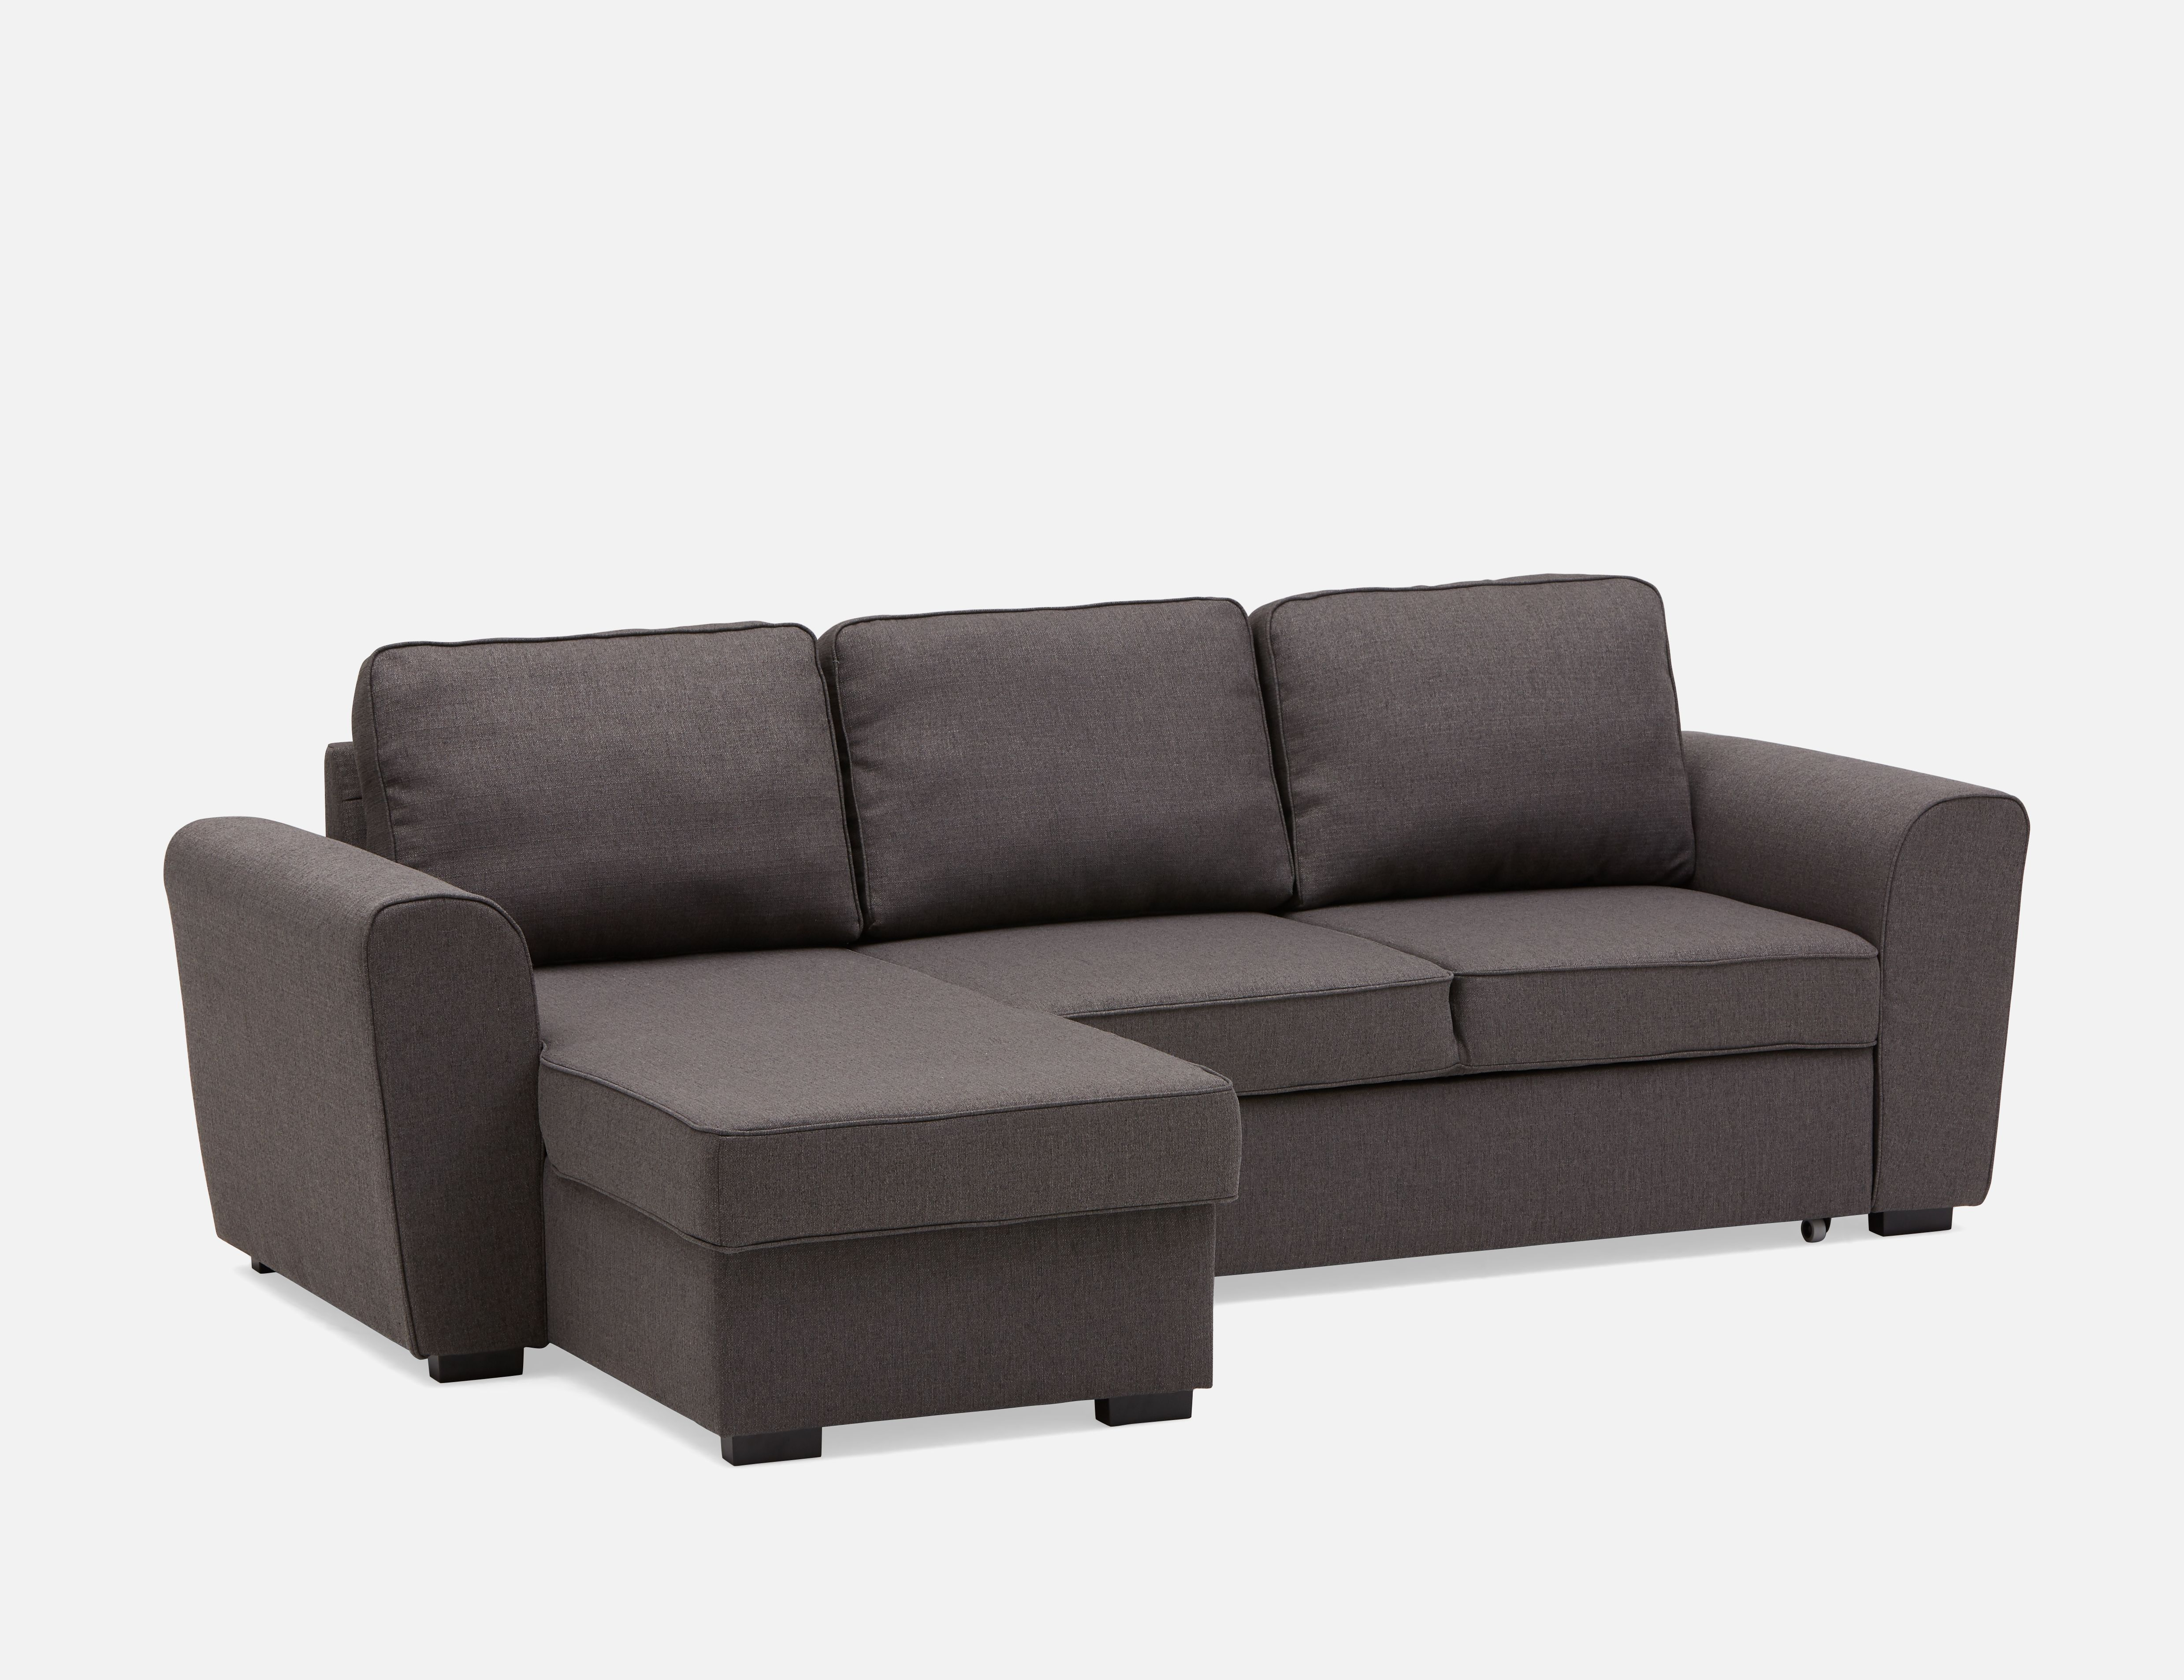 Grey Interchangeable Sectional Sofa Bed With Storage Structube